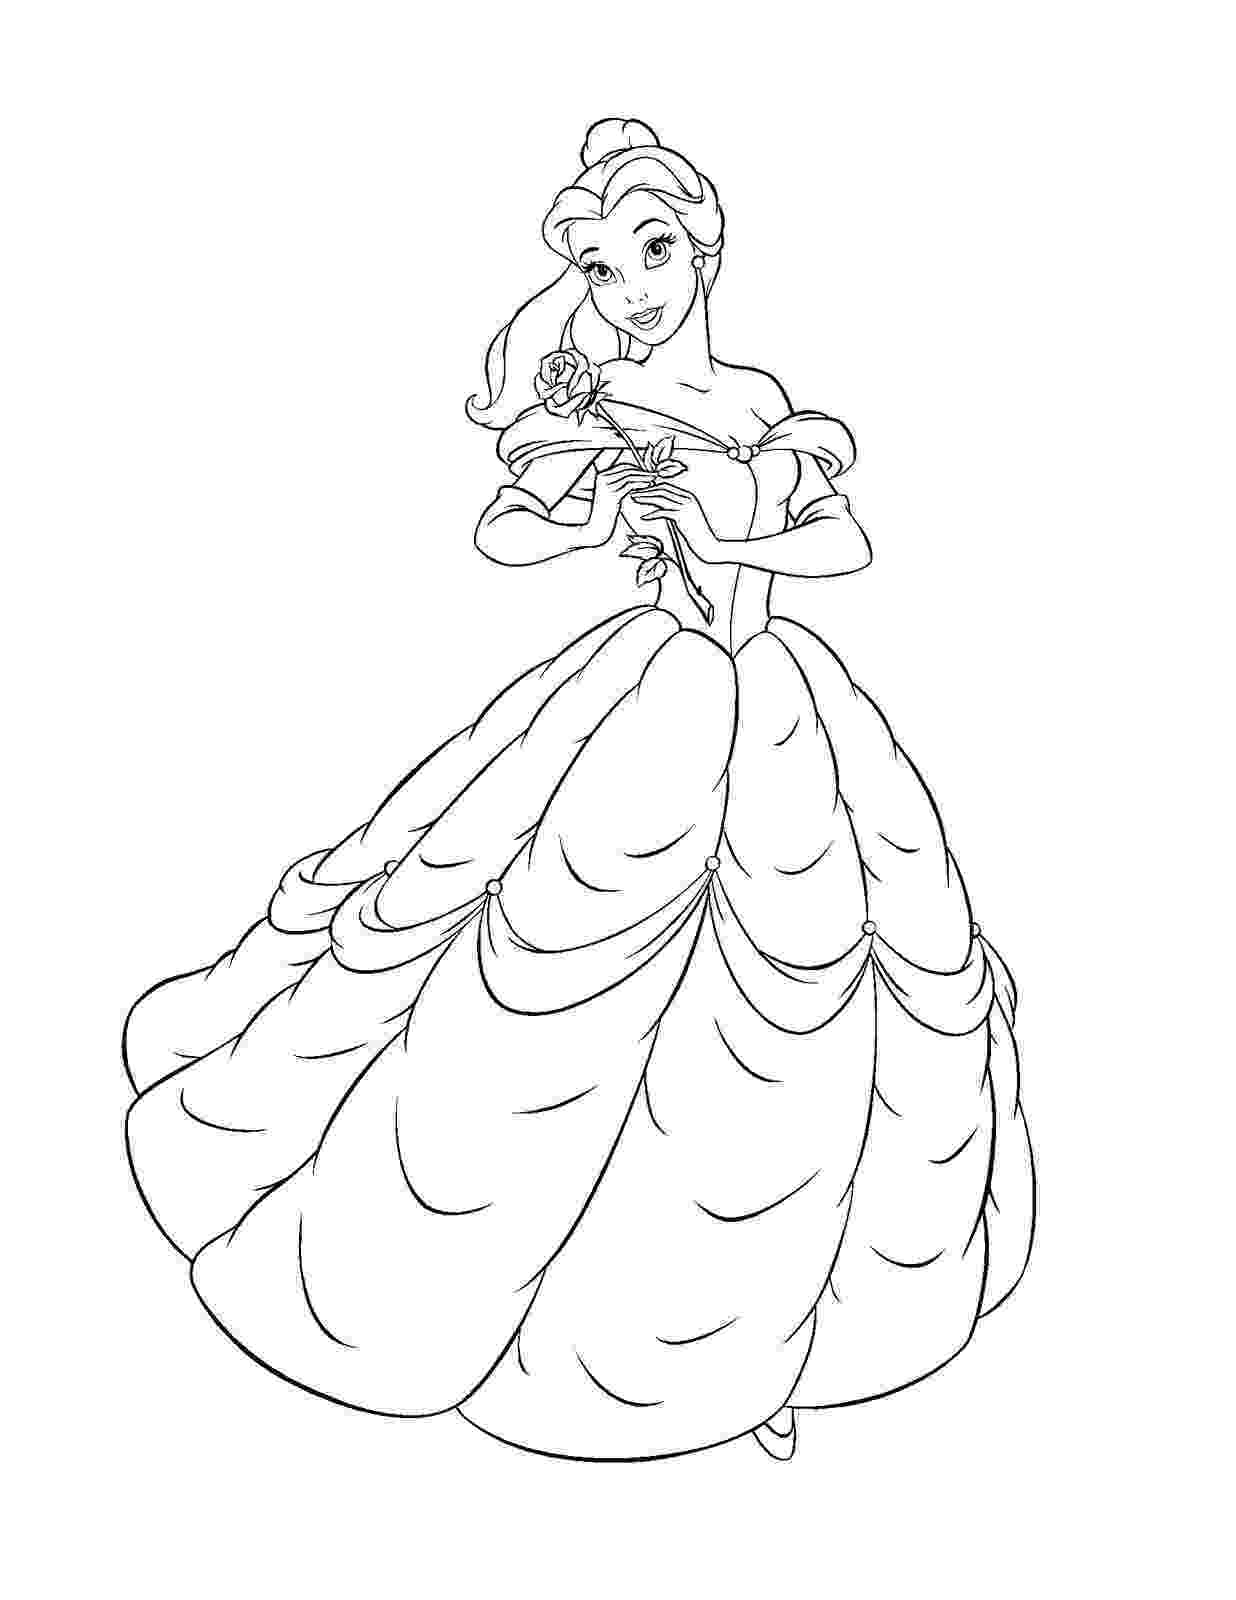 belle pictures to color free printable belle coloring pages for kids belle to color pictures